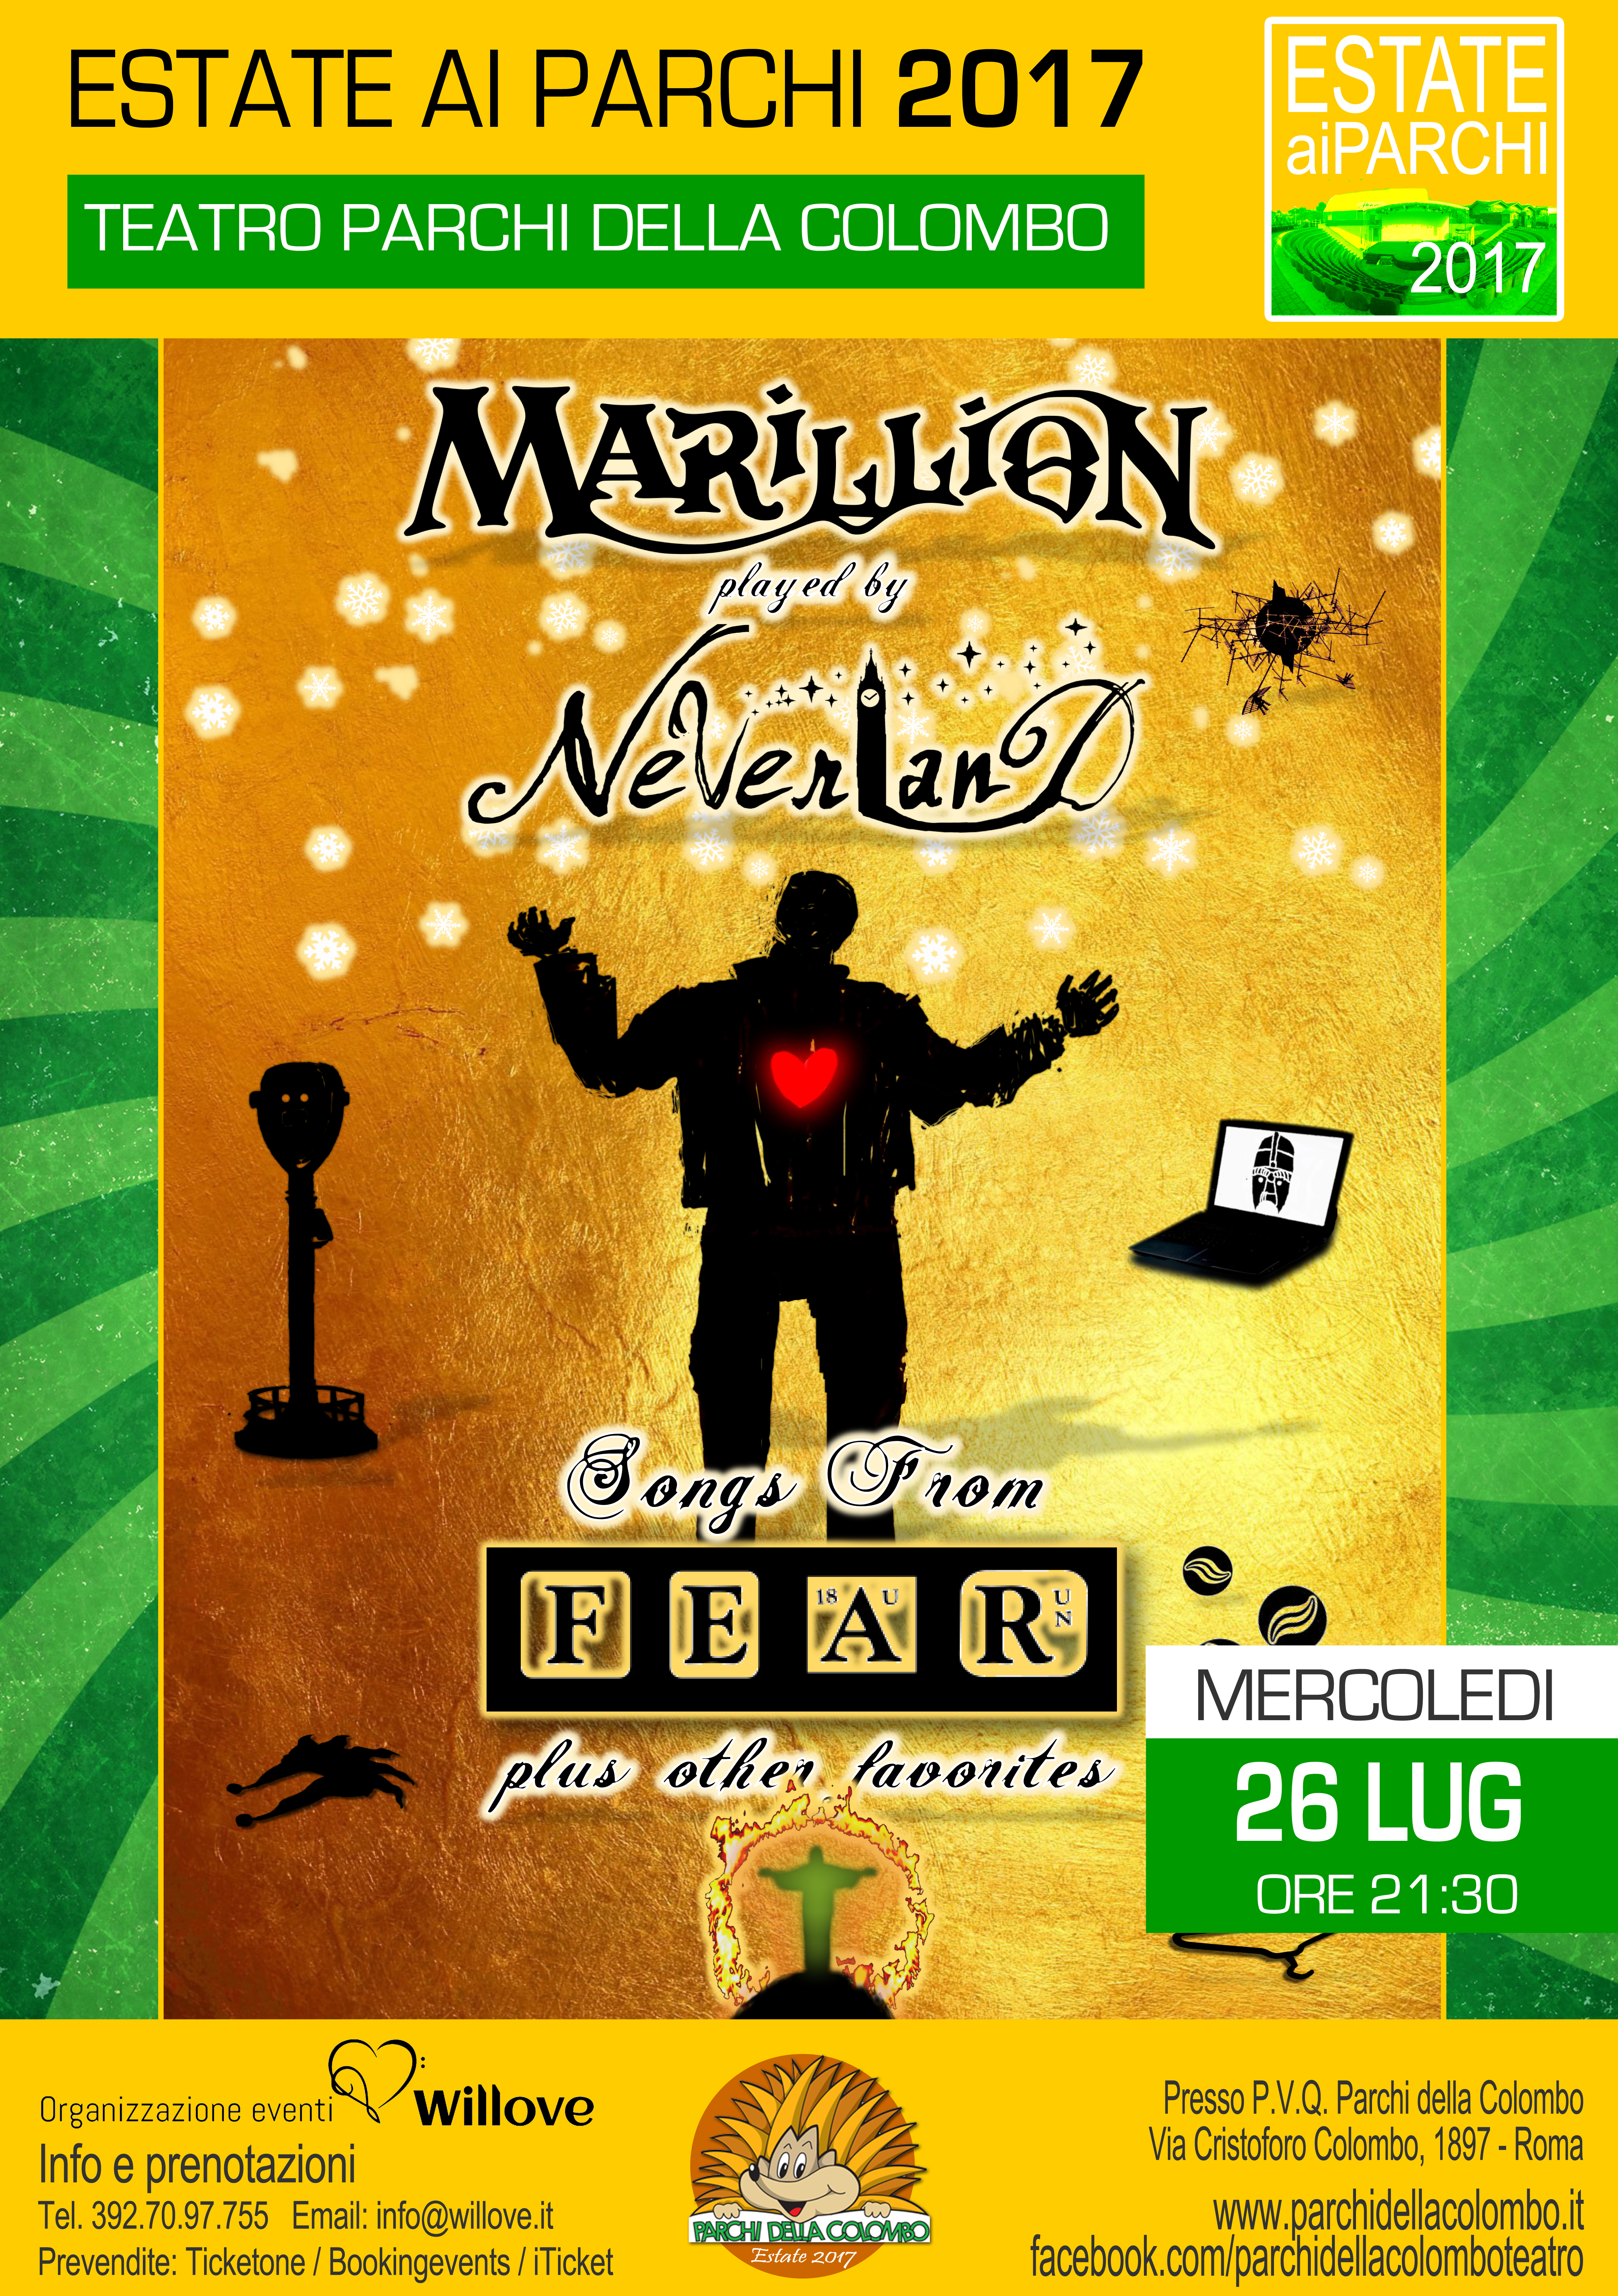 ESTATE AI PARCHI 2017 MARILLION